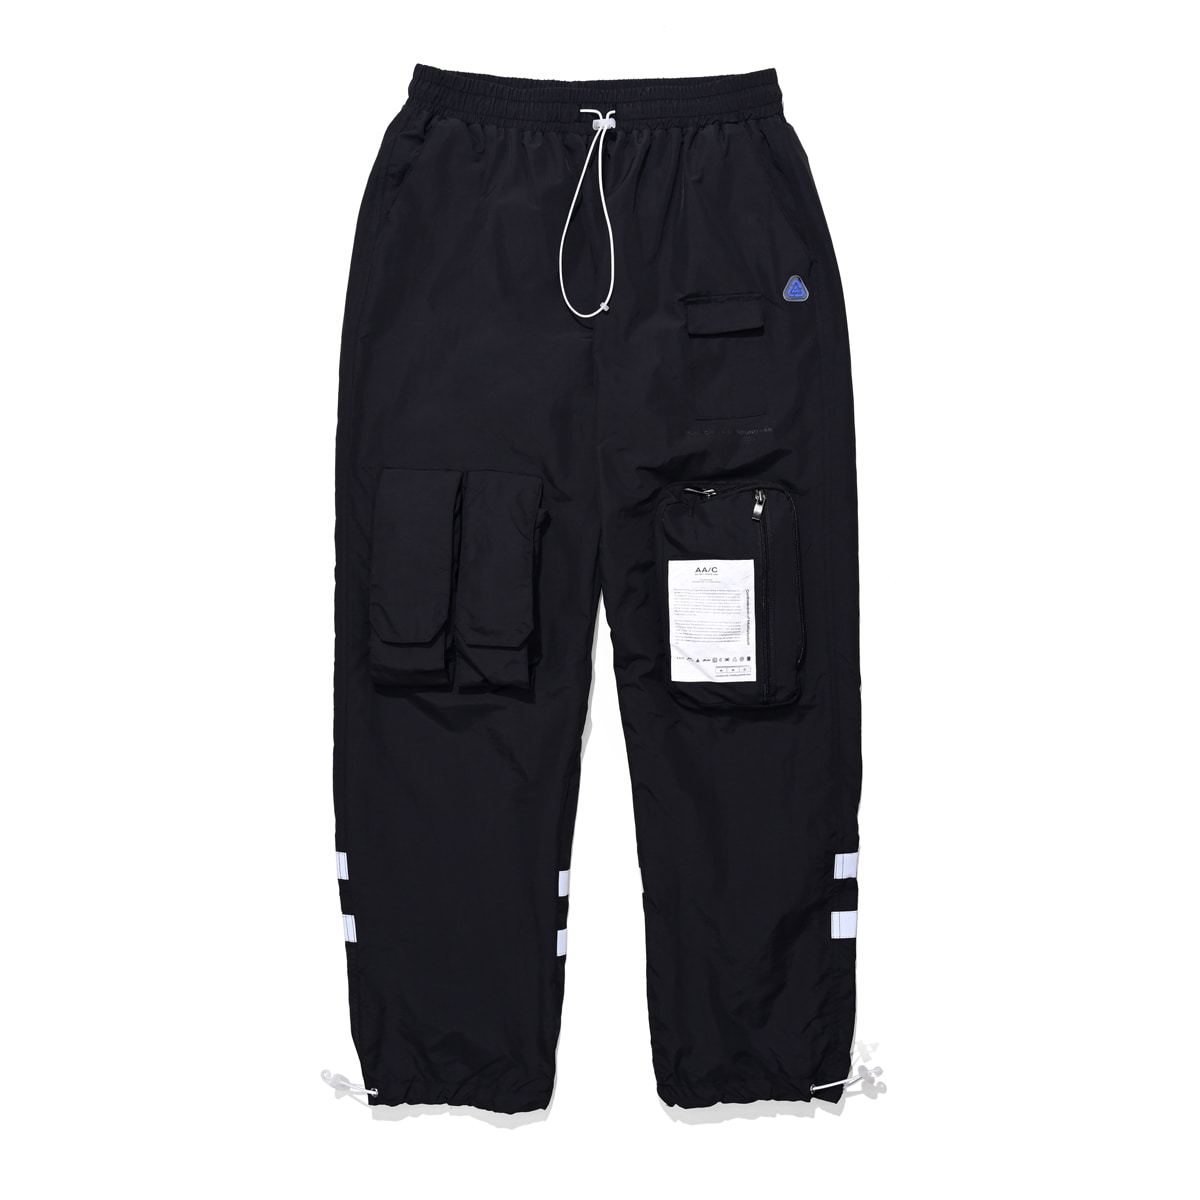 8 pocket smock pants (black)